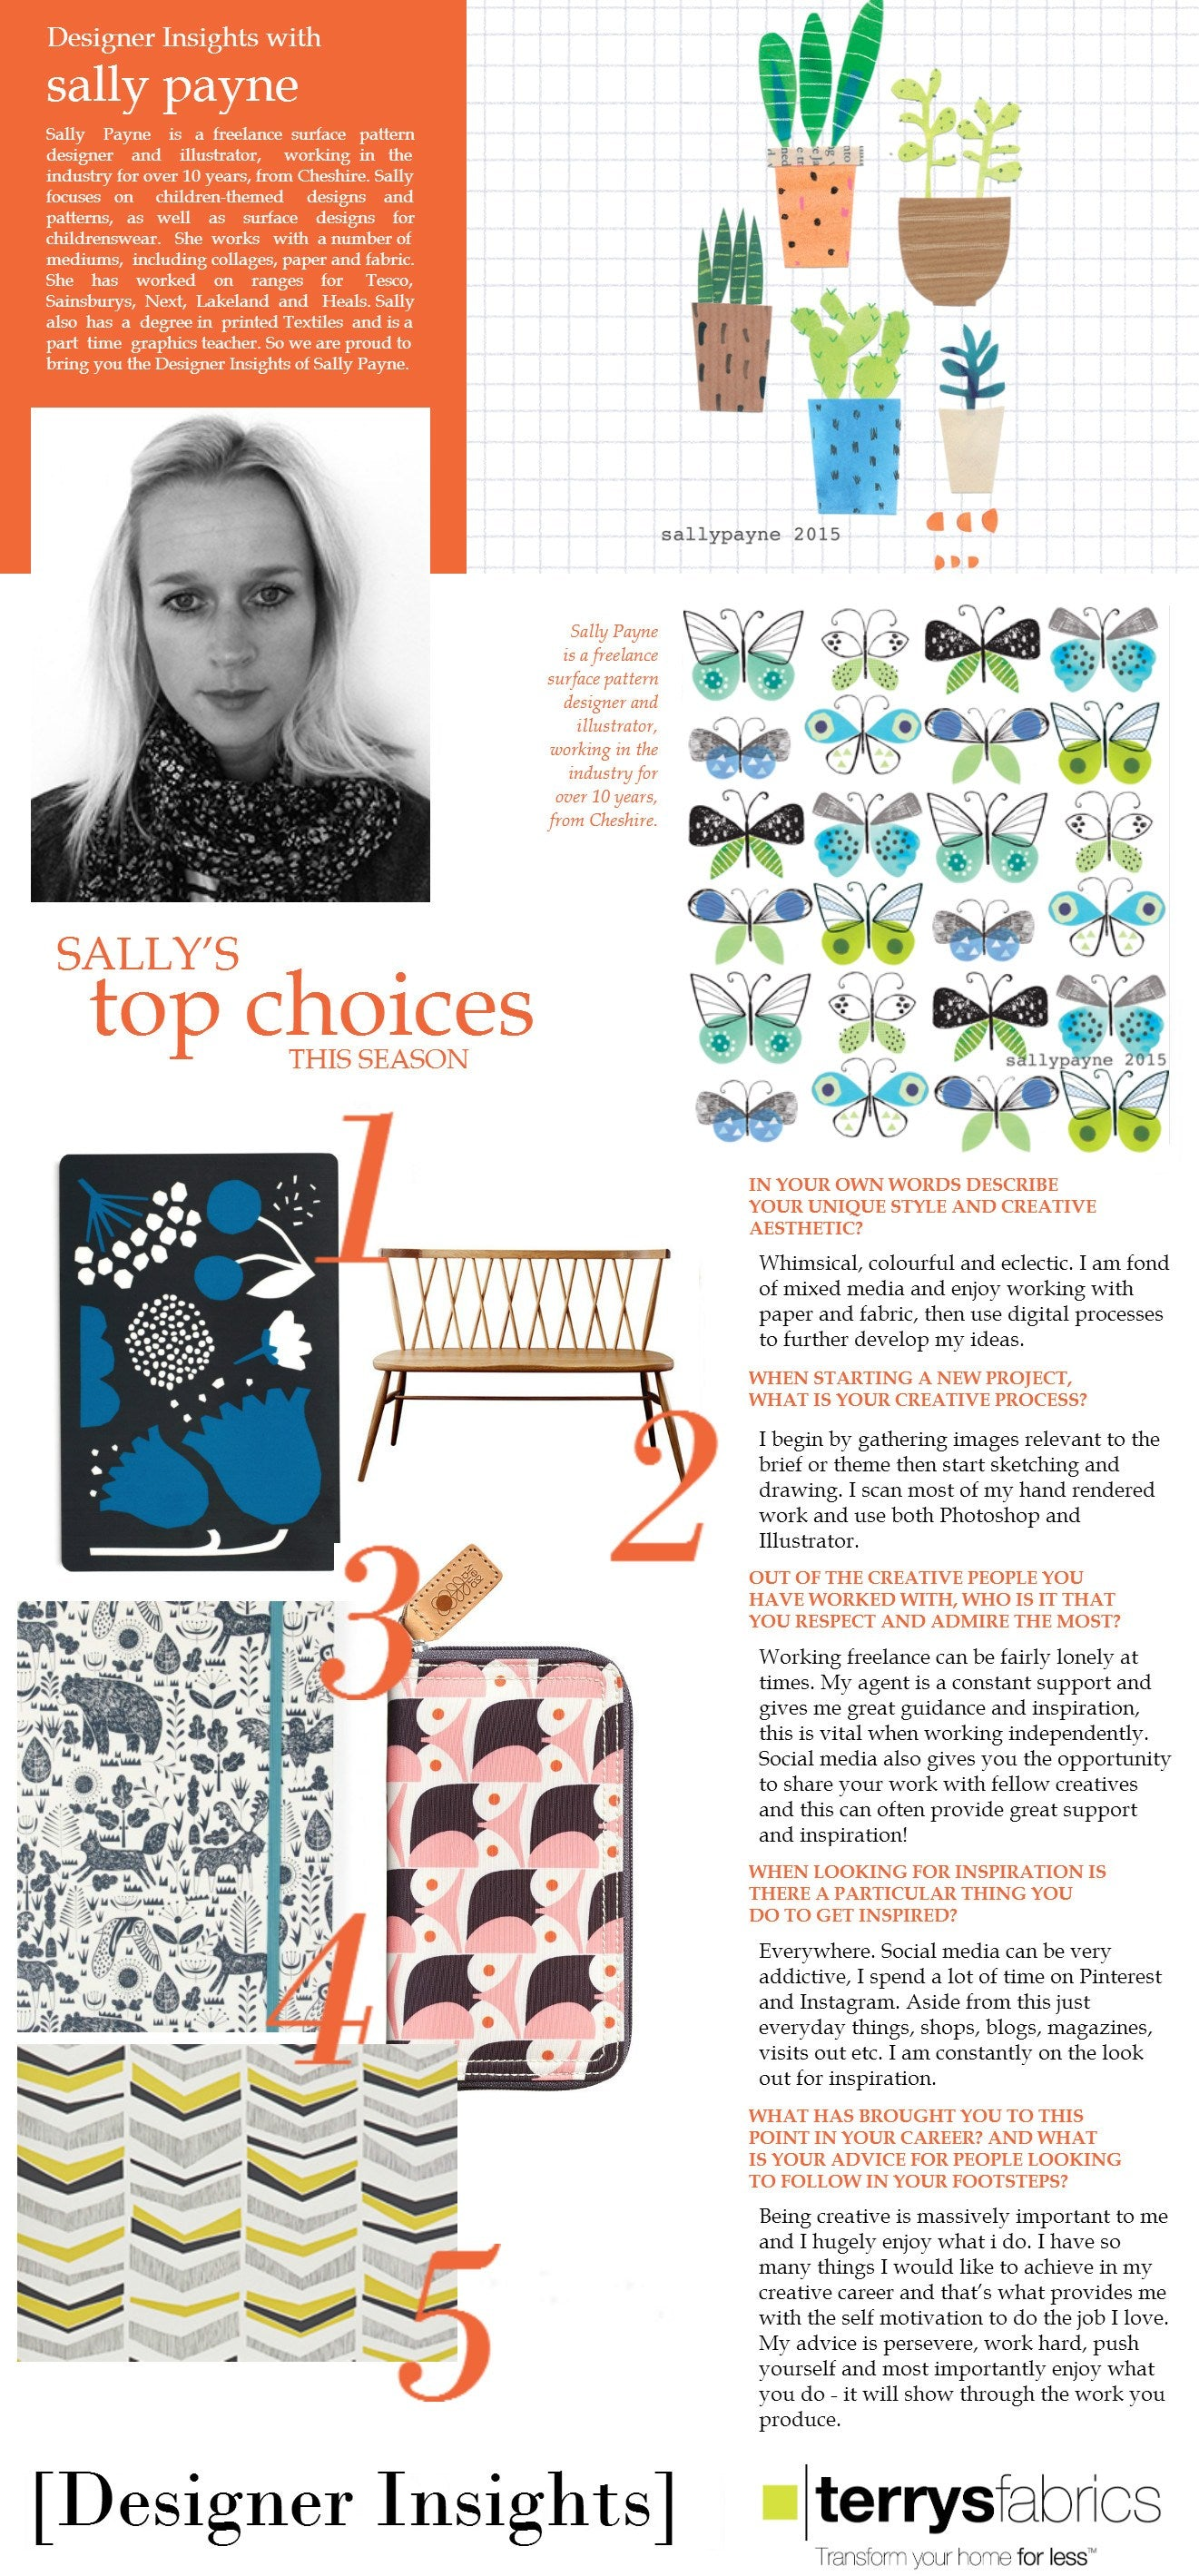 Designer Insights - Sally Payne